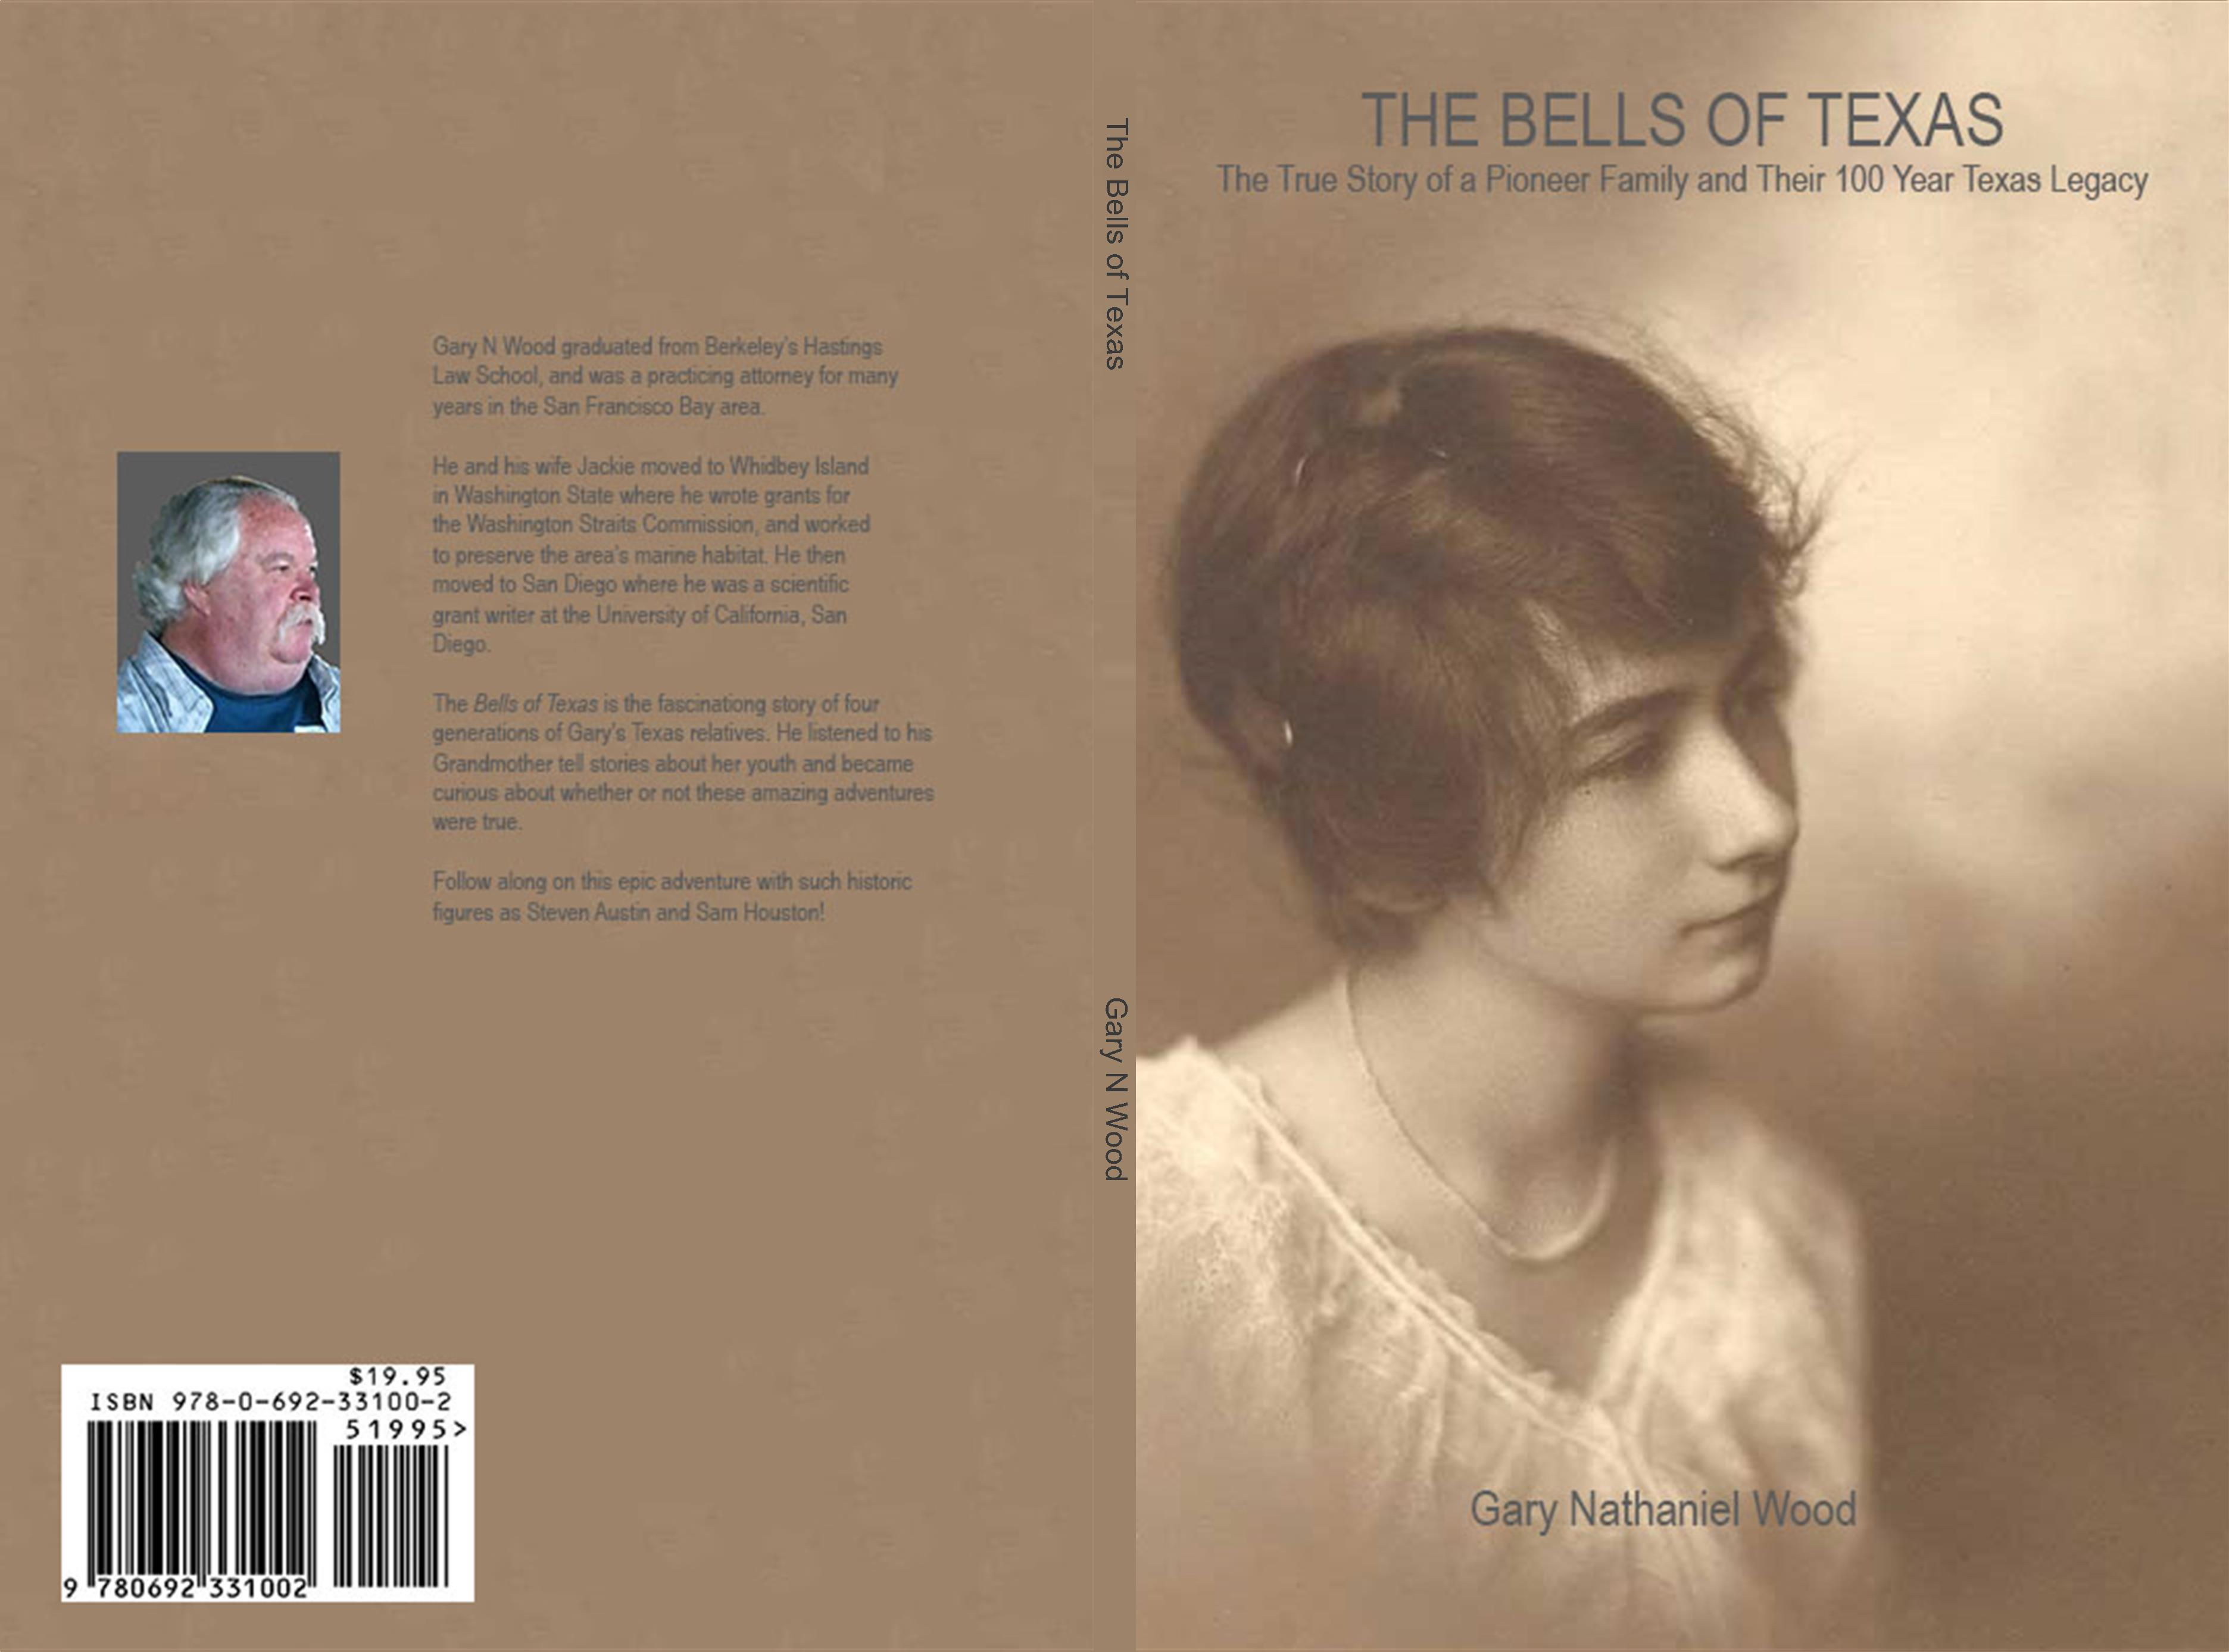 The Bells of Texas cover image